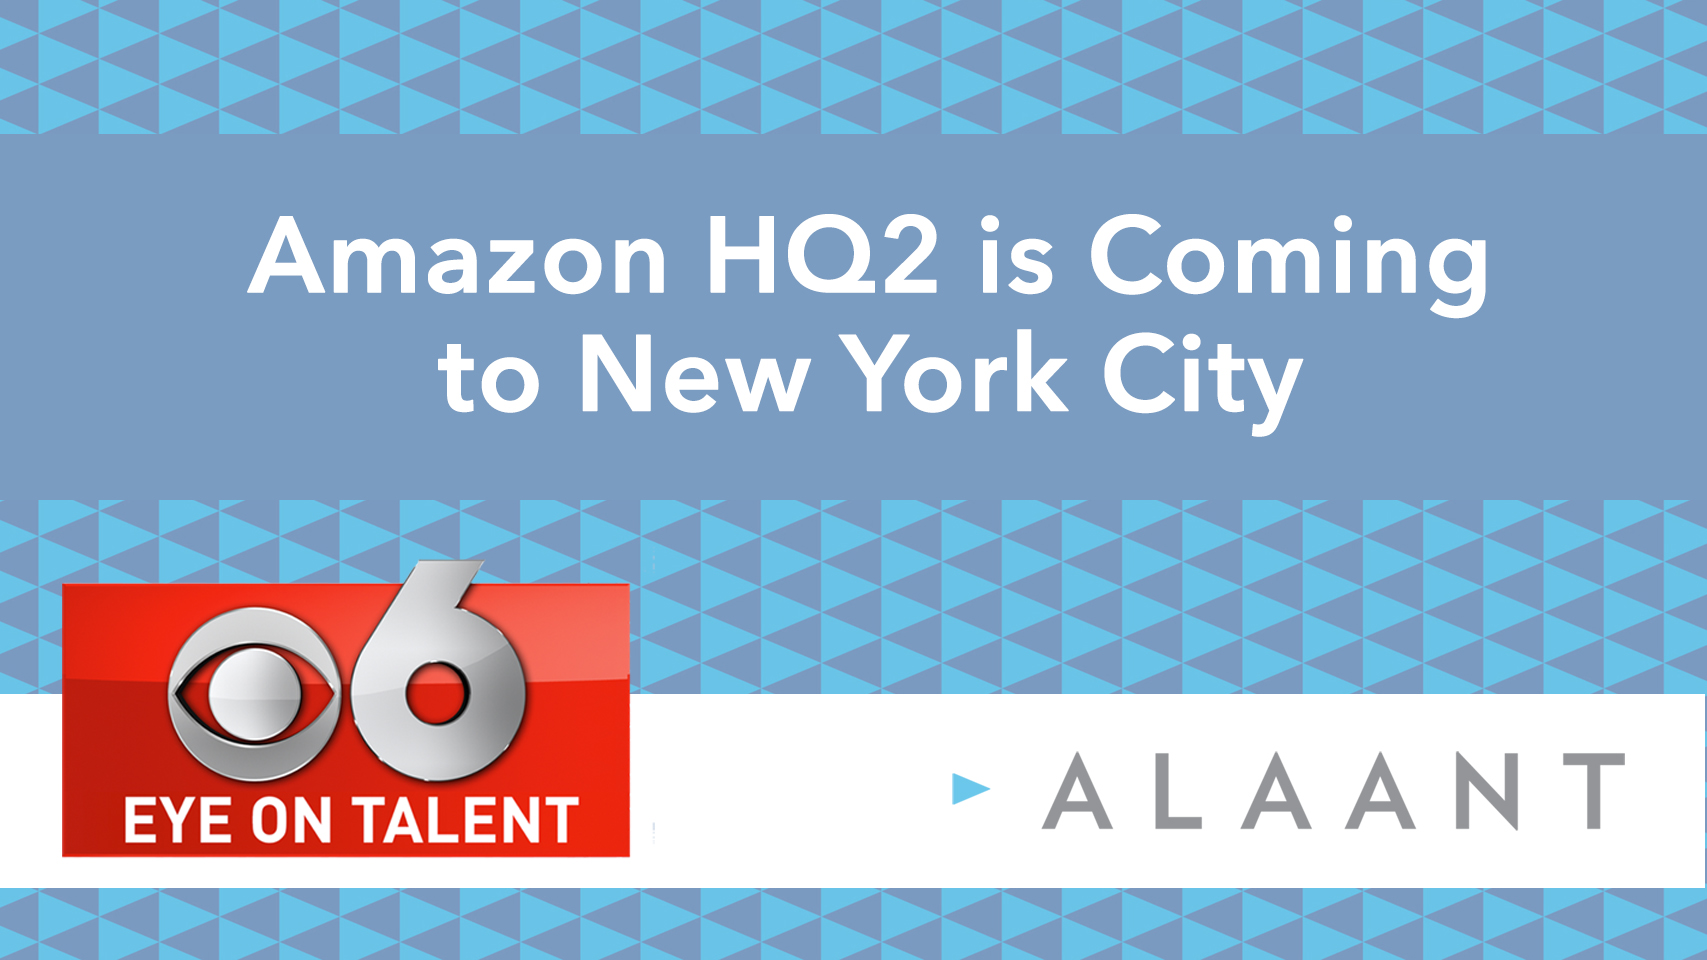 Eye On Talent: Amazon HQ2 is Coming to New York City